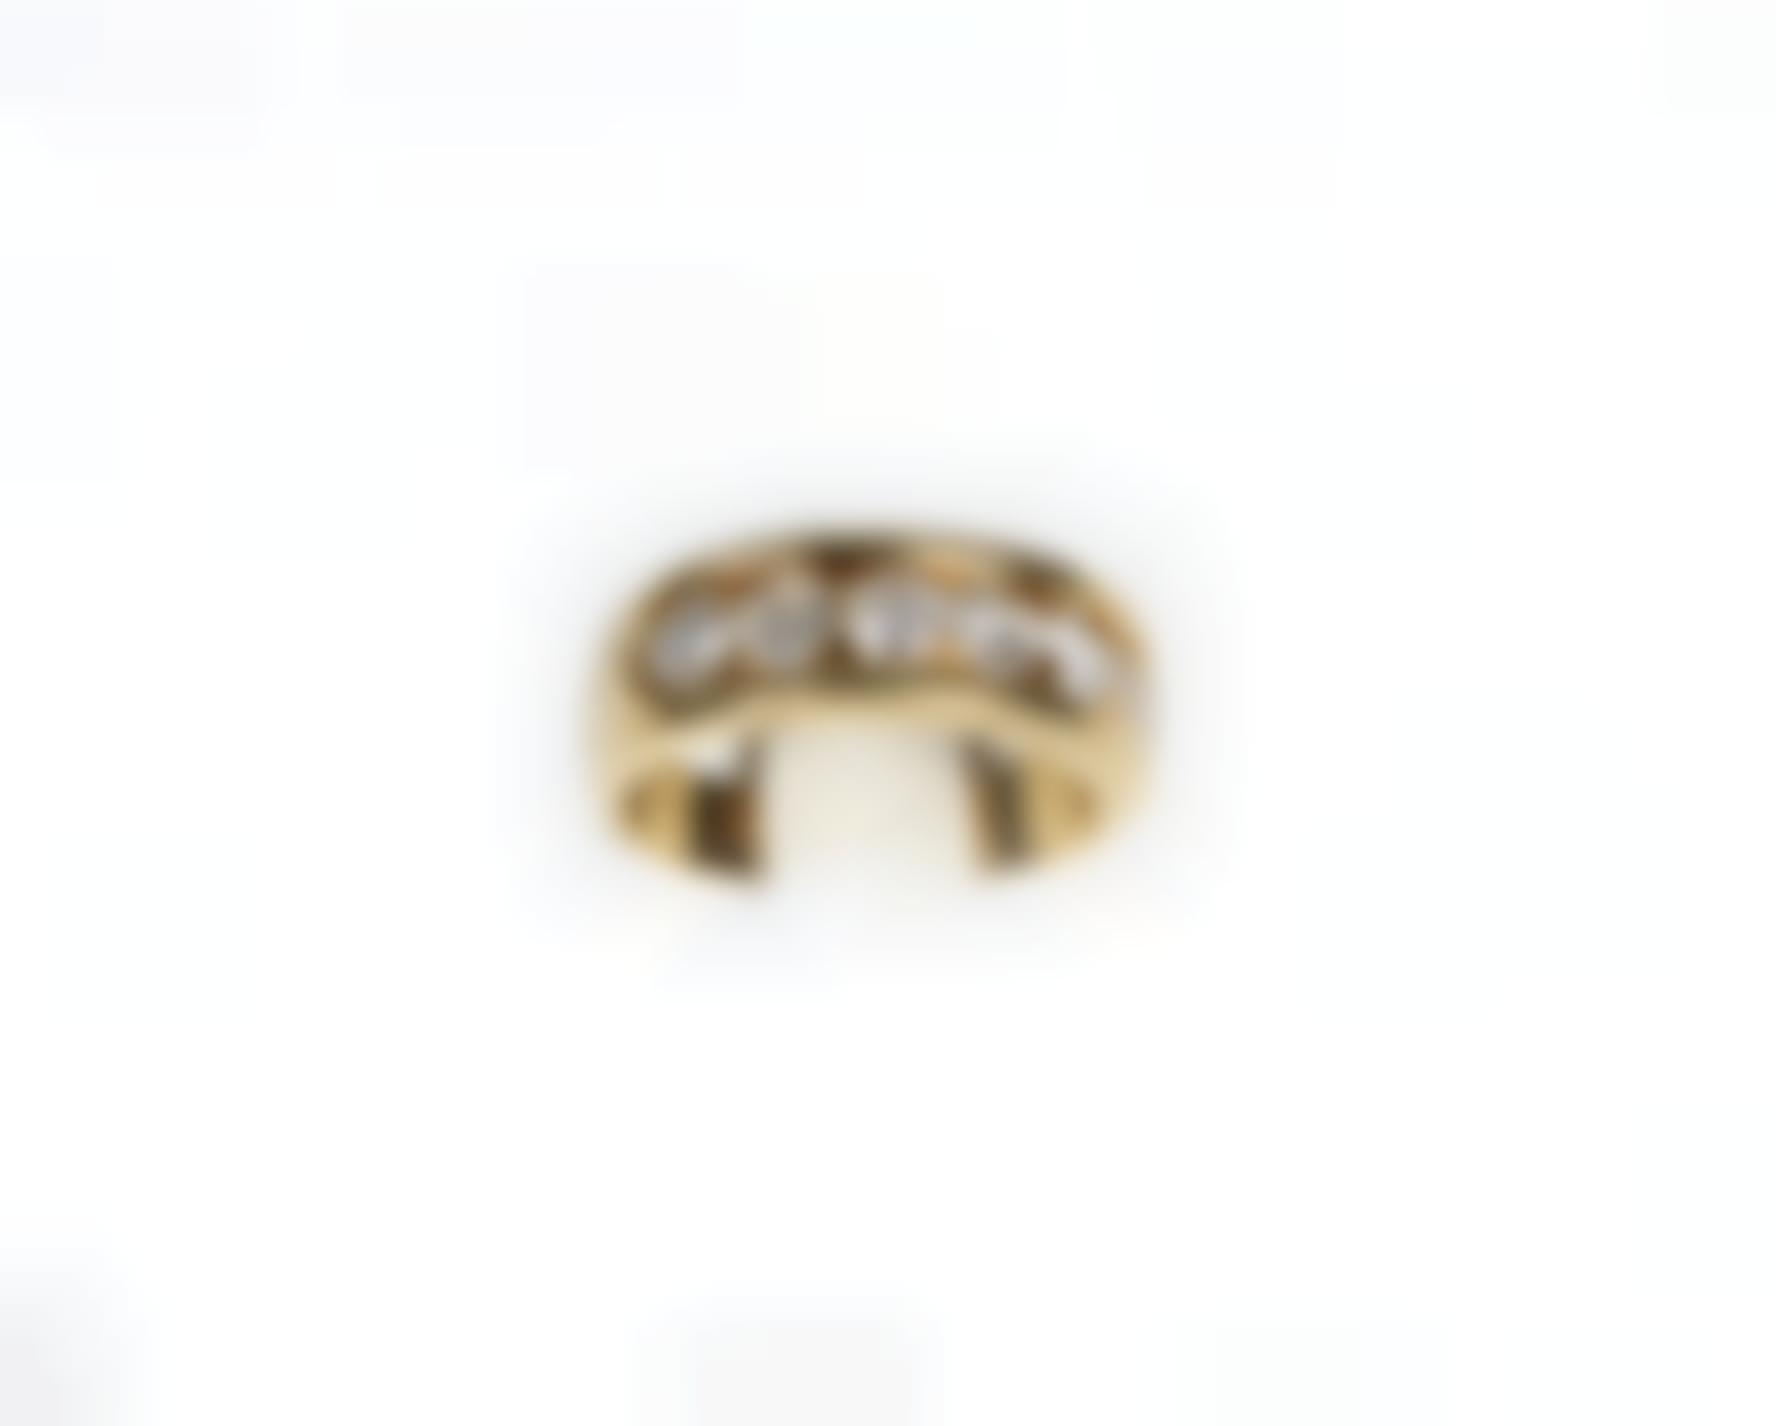 A Gold And Diamond Ring-